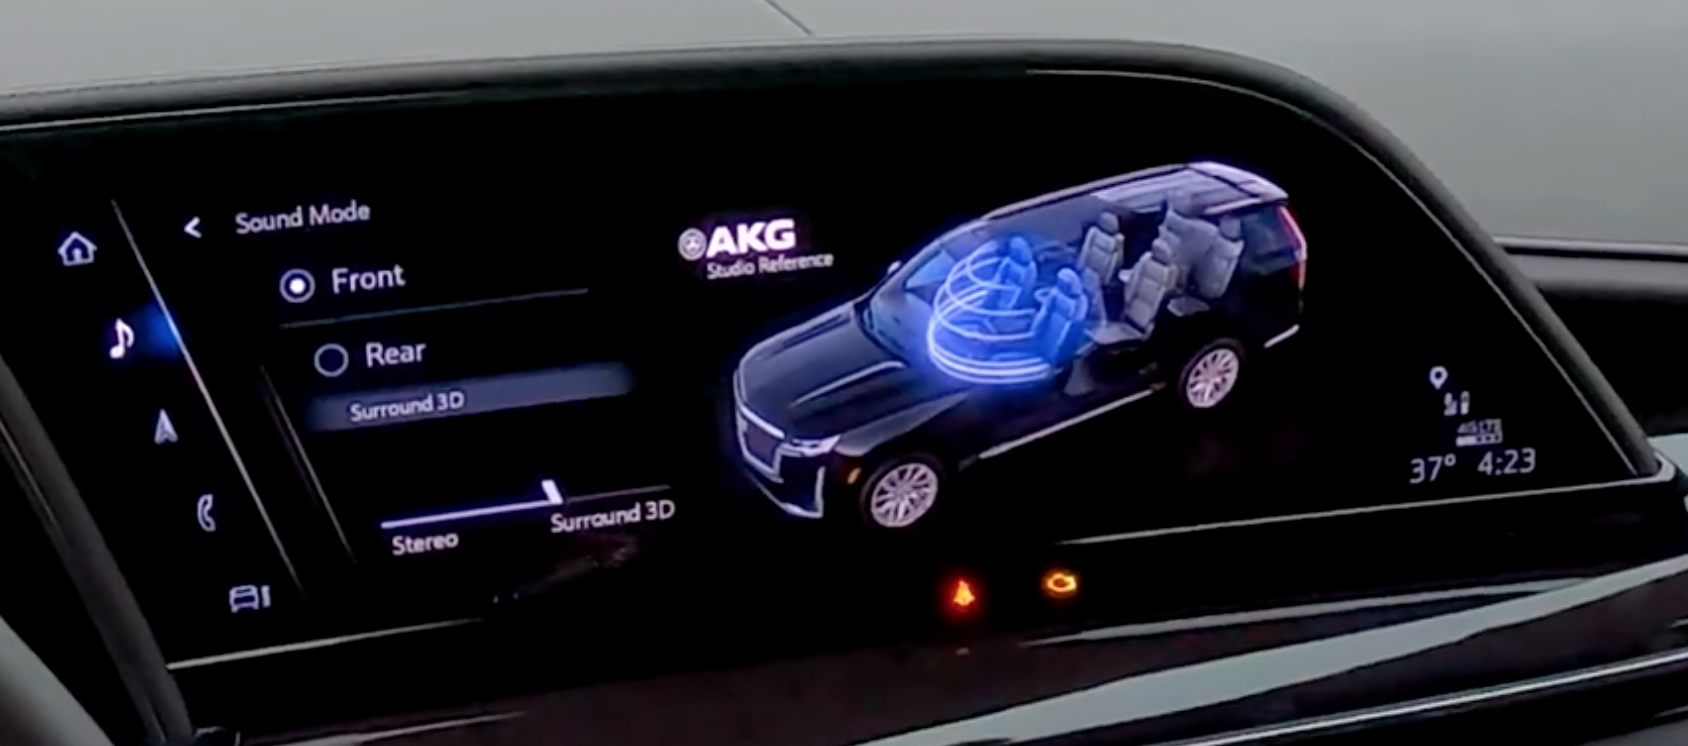 Changing the sound mode to surround or stereo with an illustration of a car highlighting the places that the sound is spreading